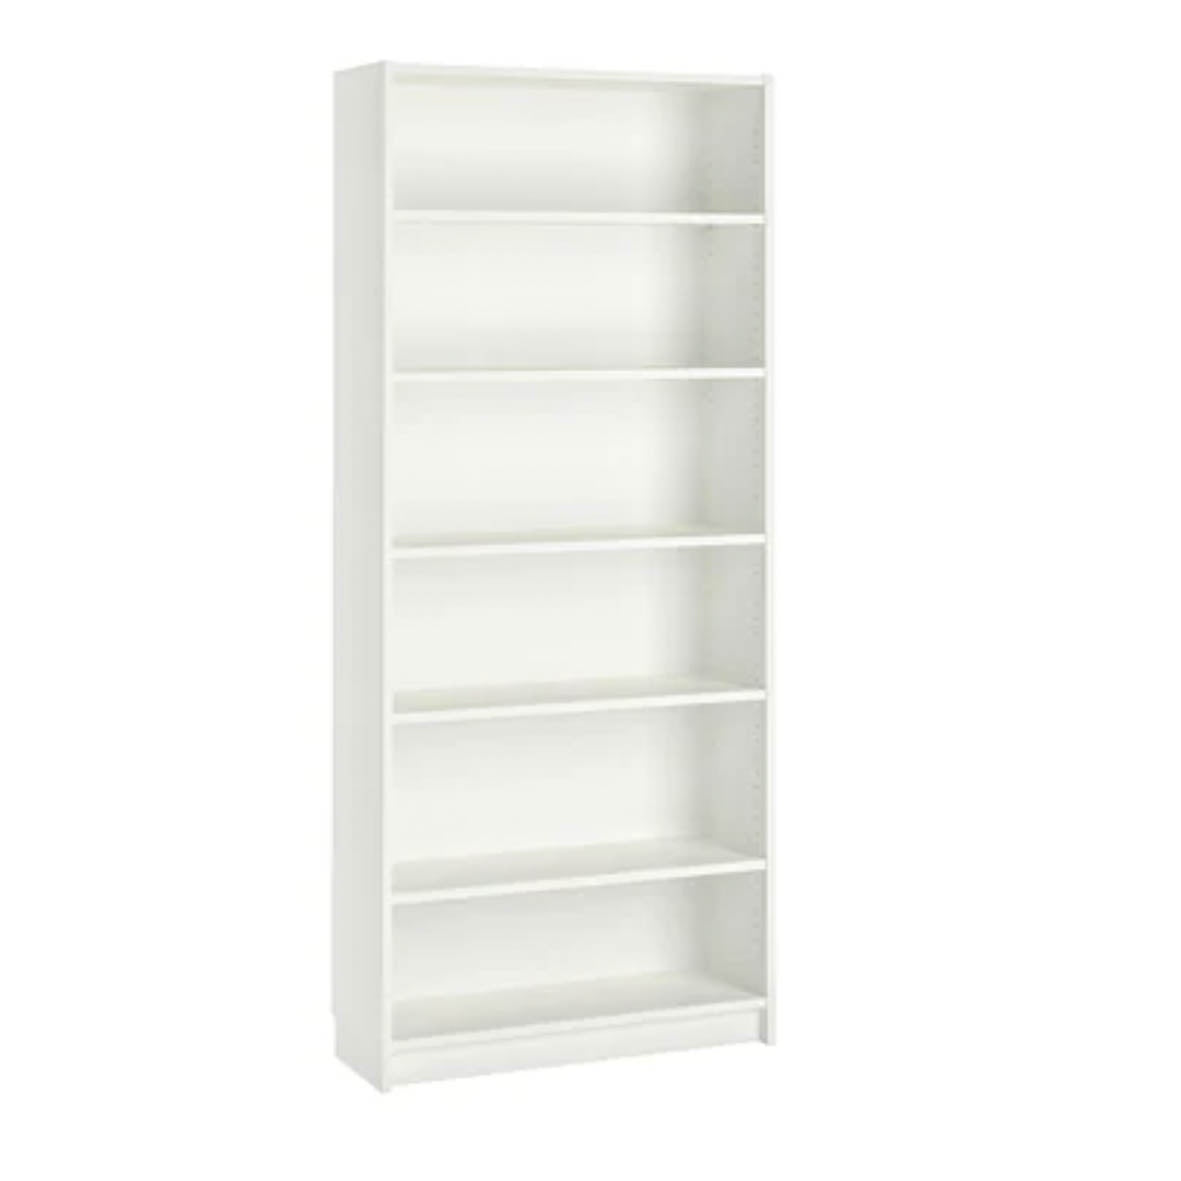 IKEA Billy Bookcase 80x28x202cm